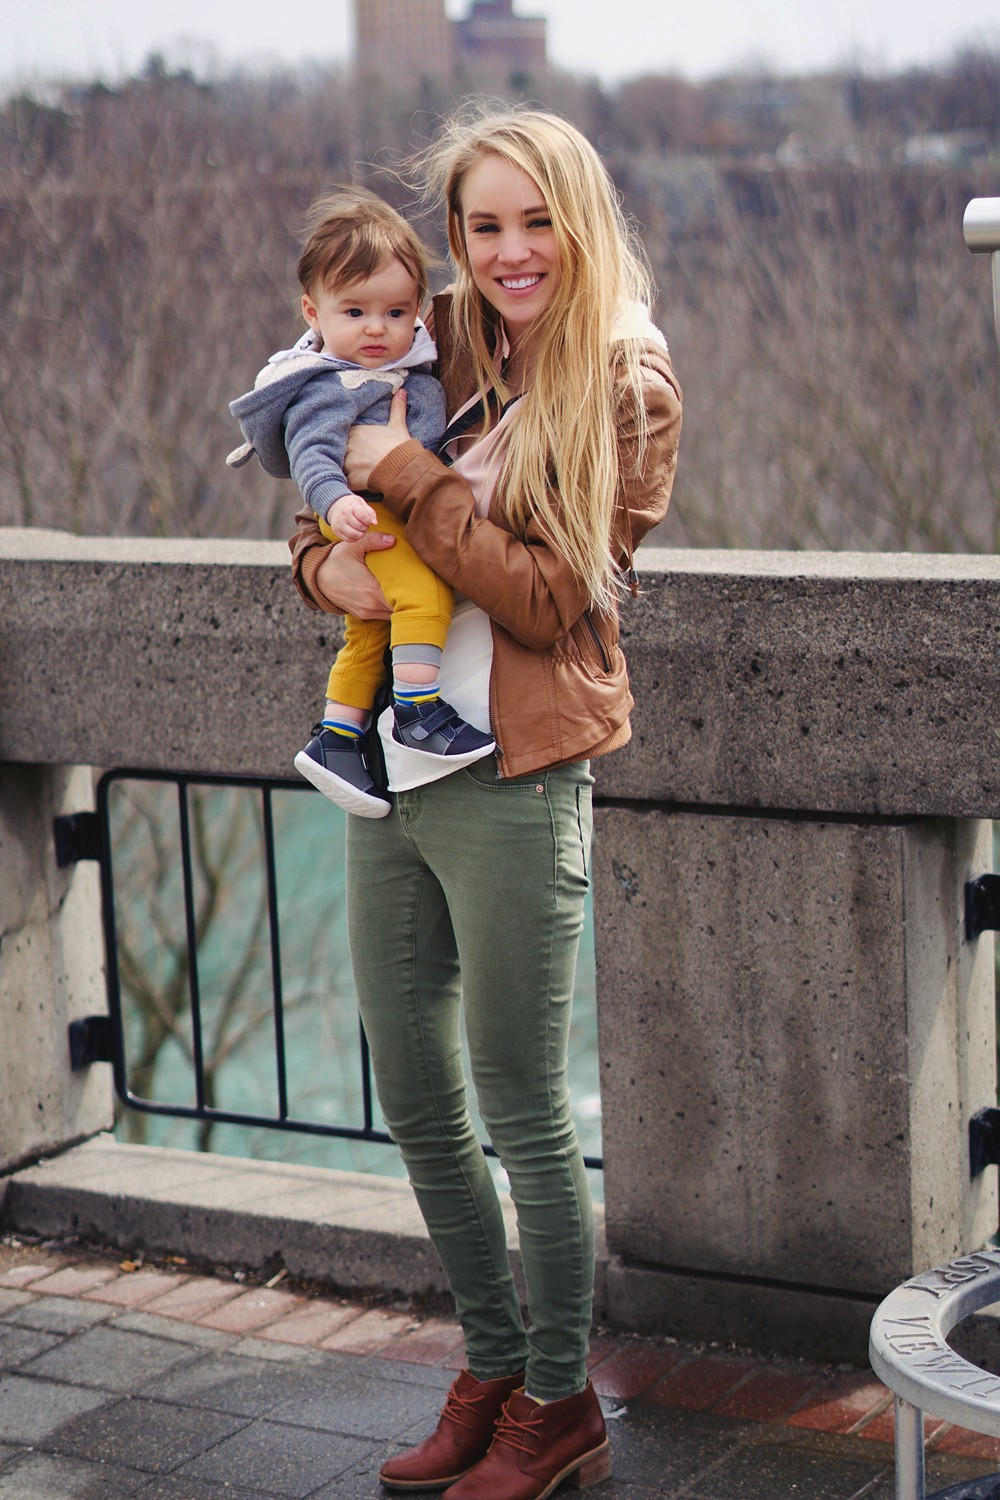 Packing List for Traveling with a Baby and Toddler by Rachael Burgess